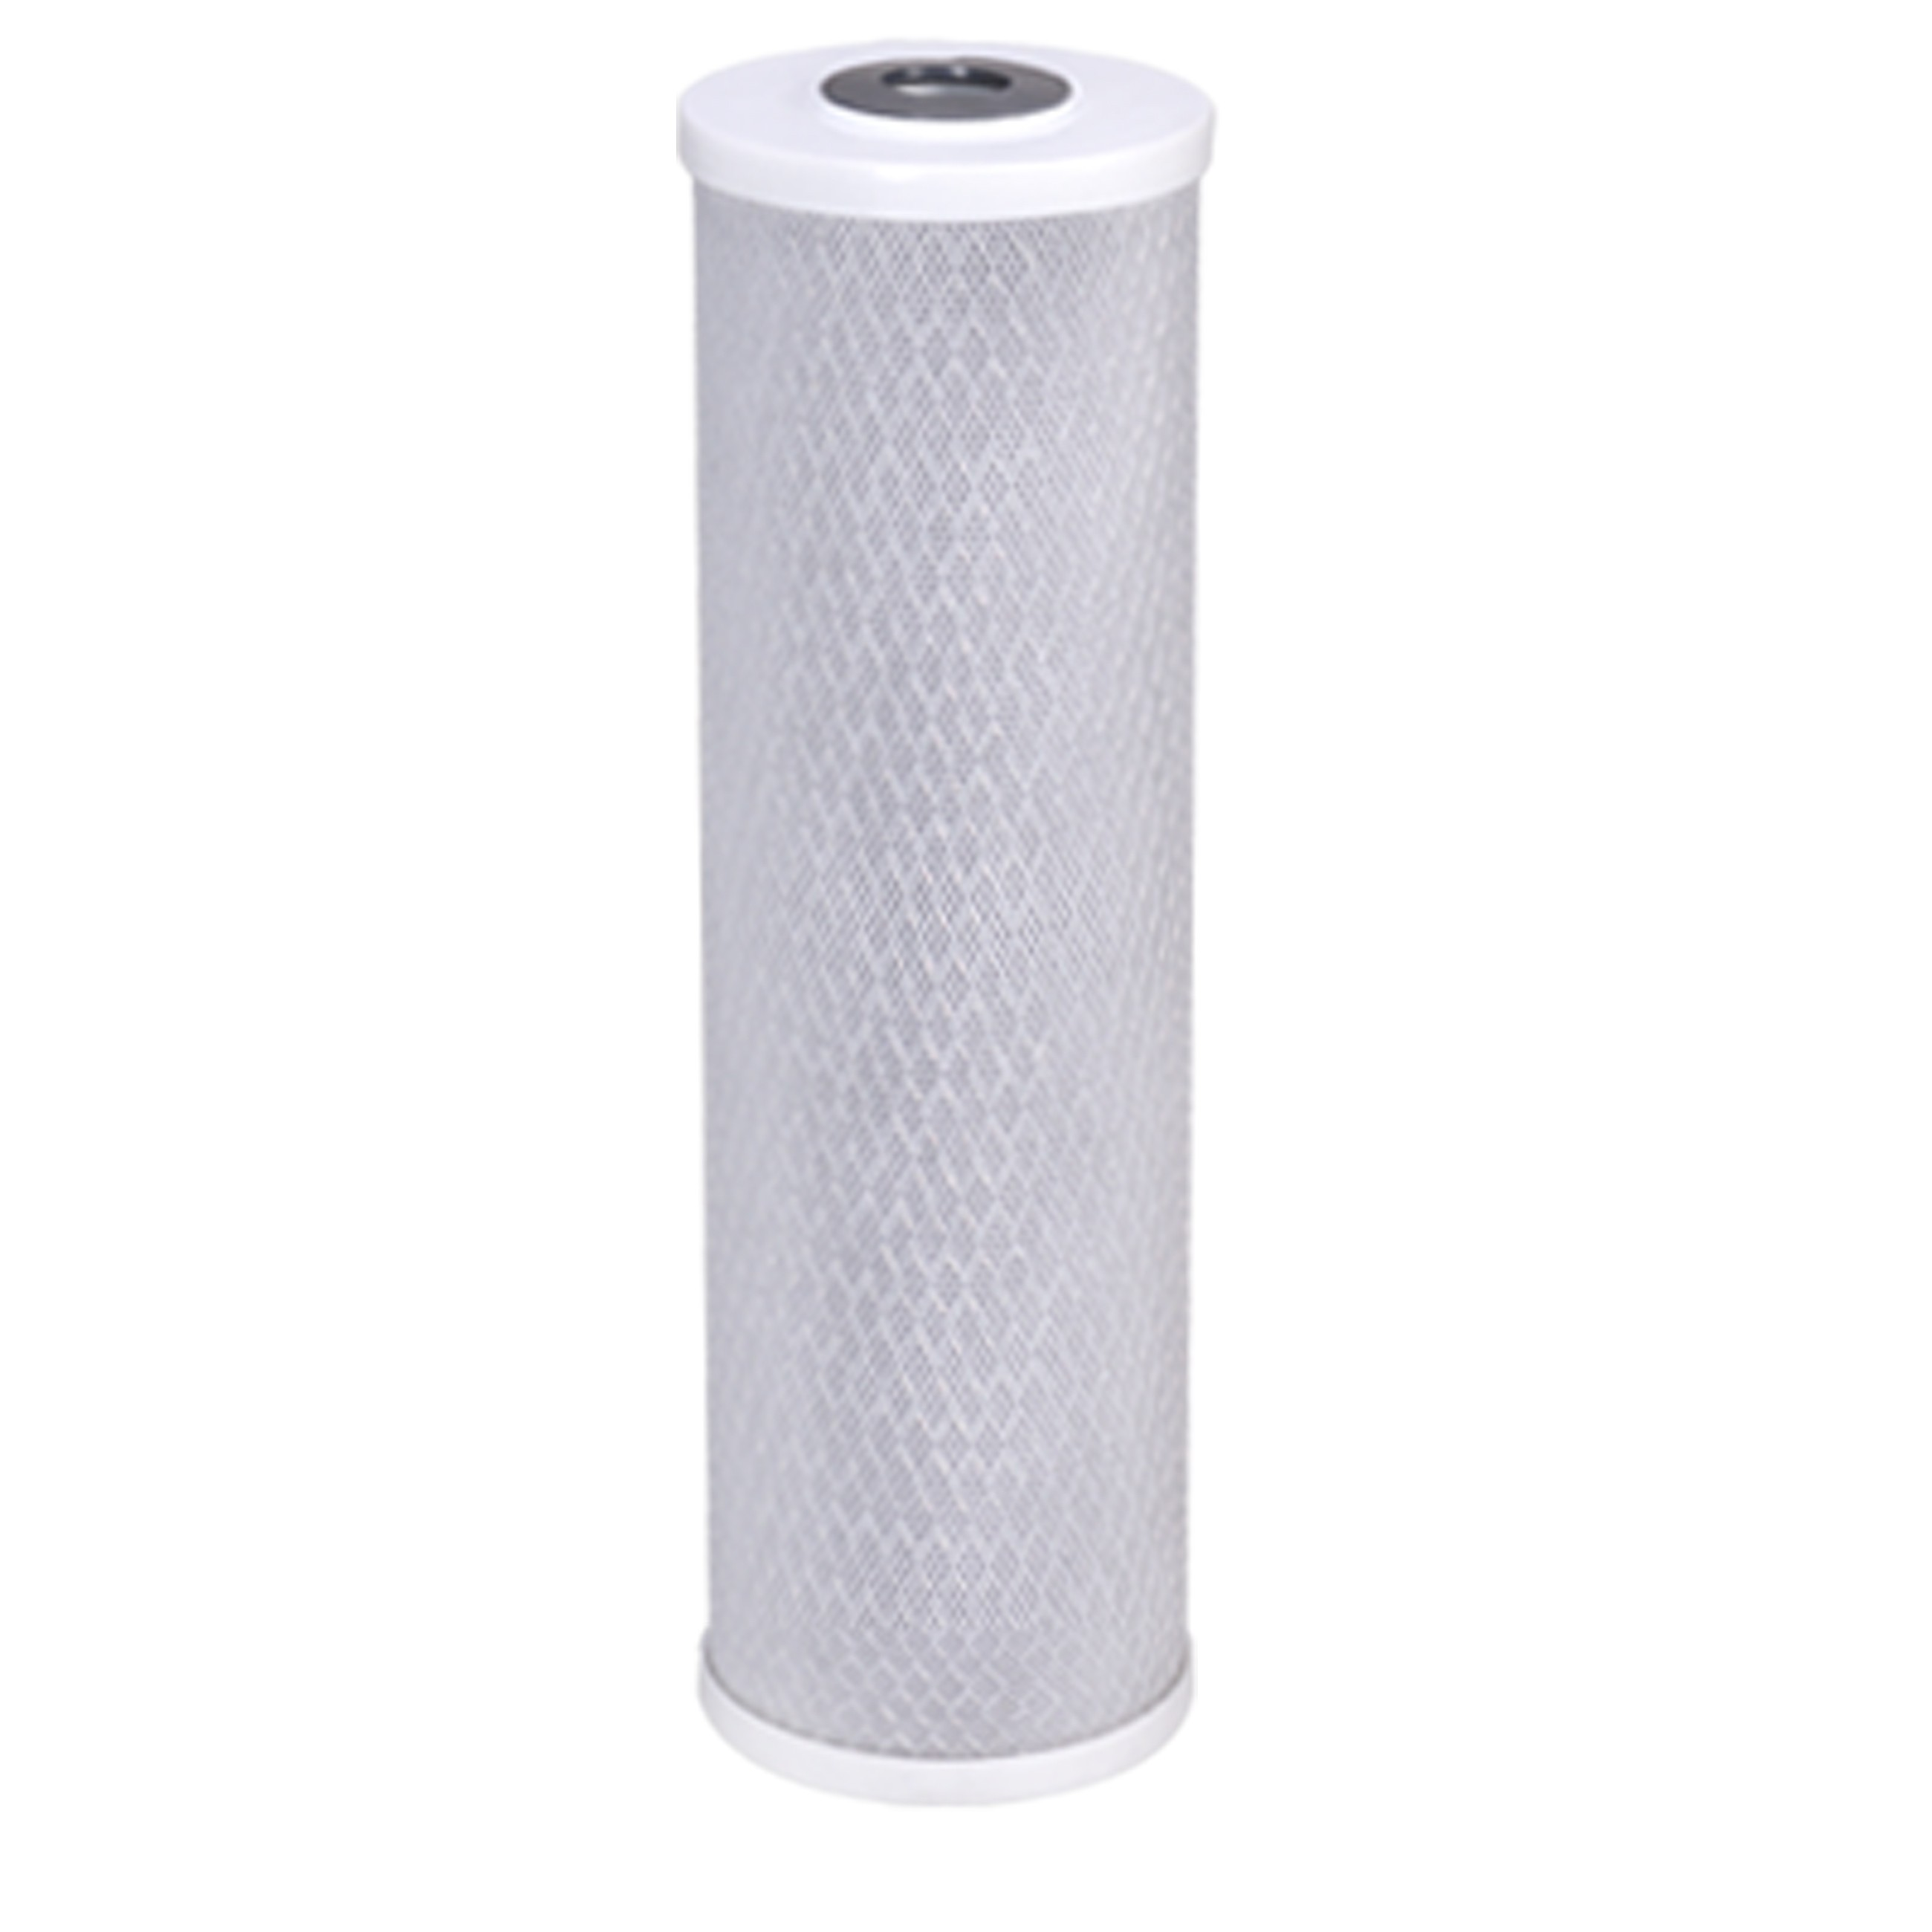 "10 MICRON 20"" x 4.5"" CARBON WATER FILTER"